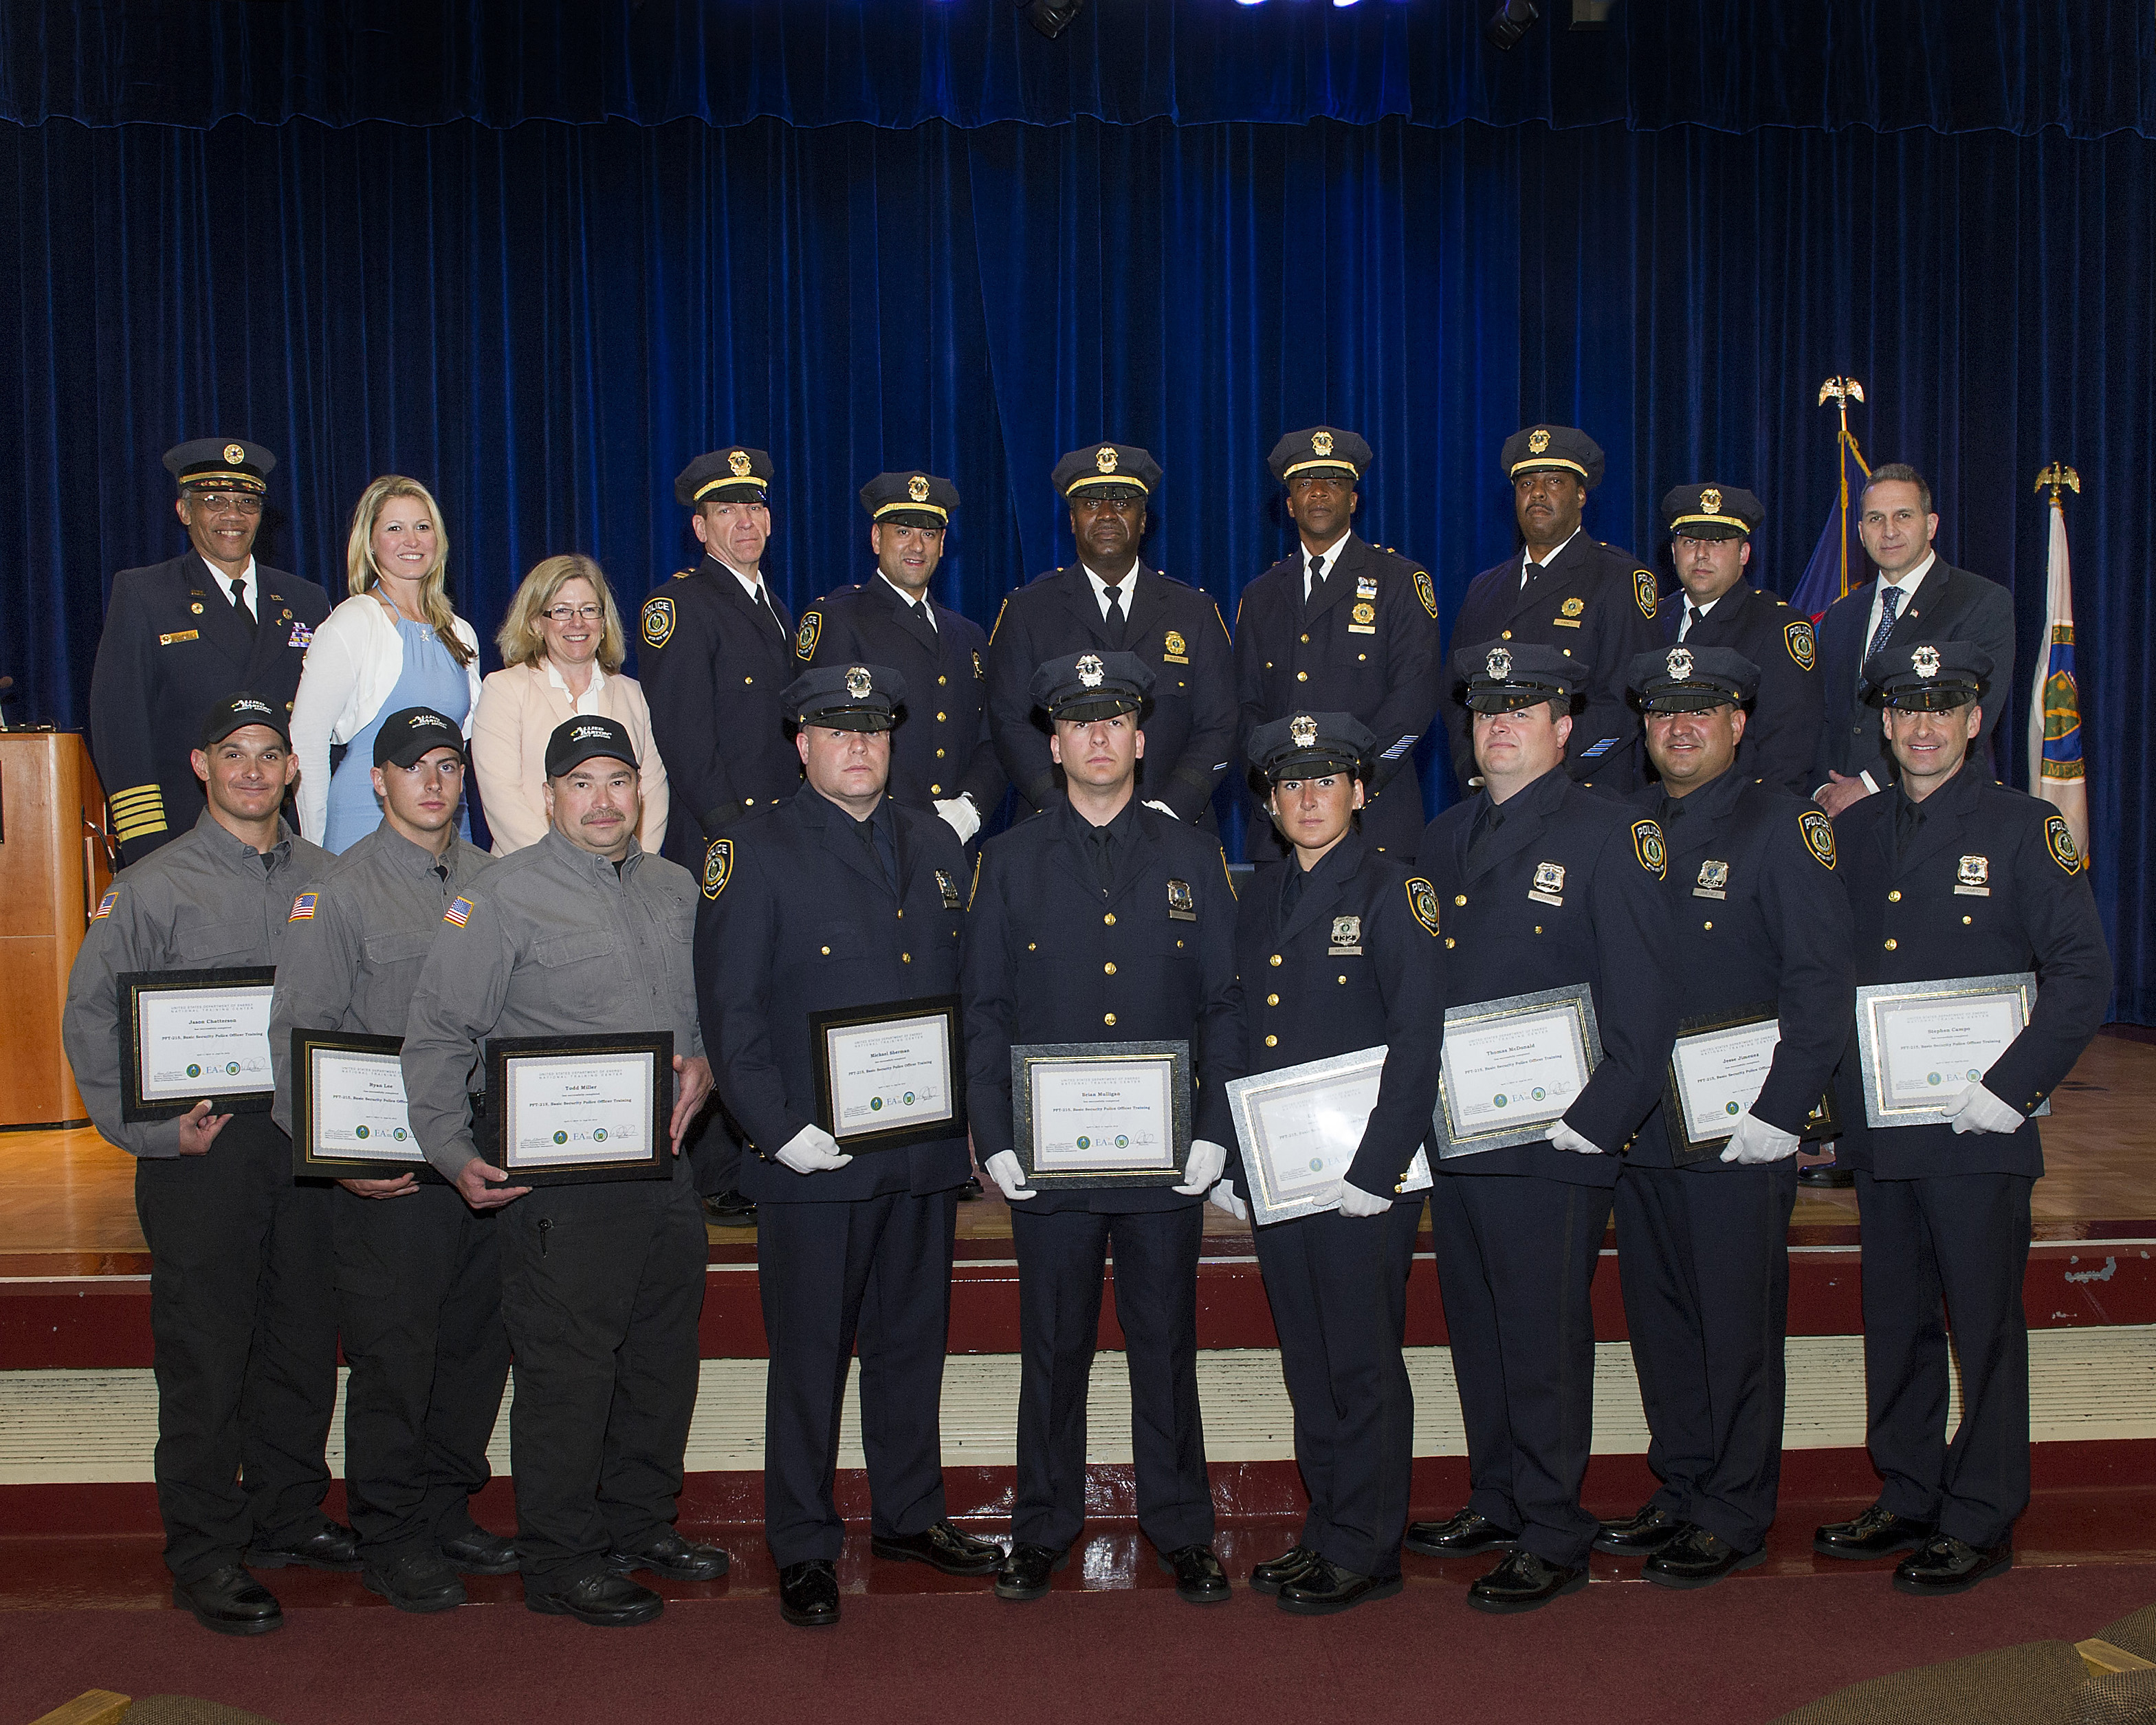 Meet the New Security Police Officers   BNL Newsroom